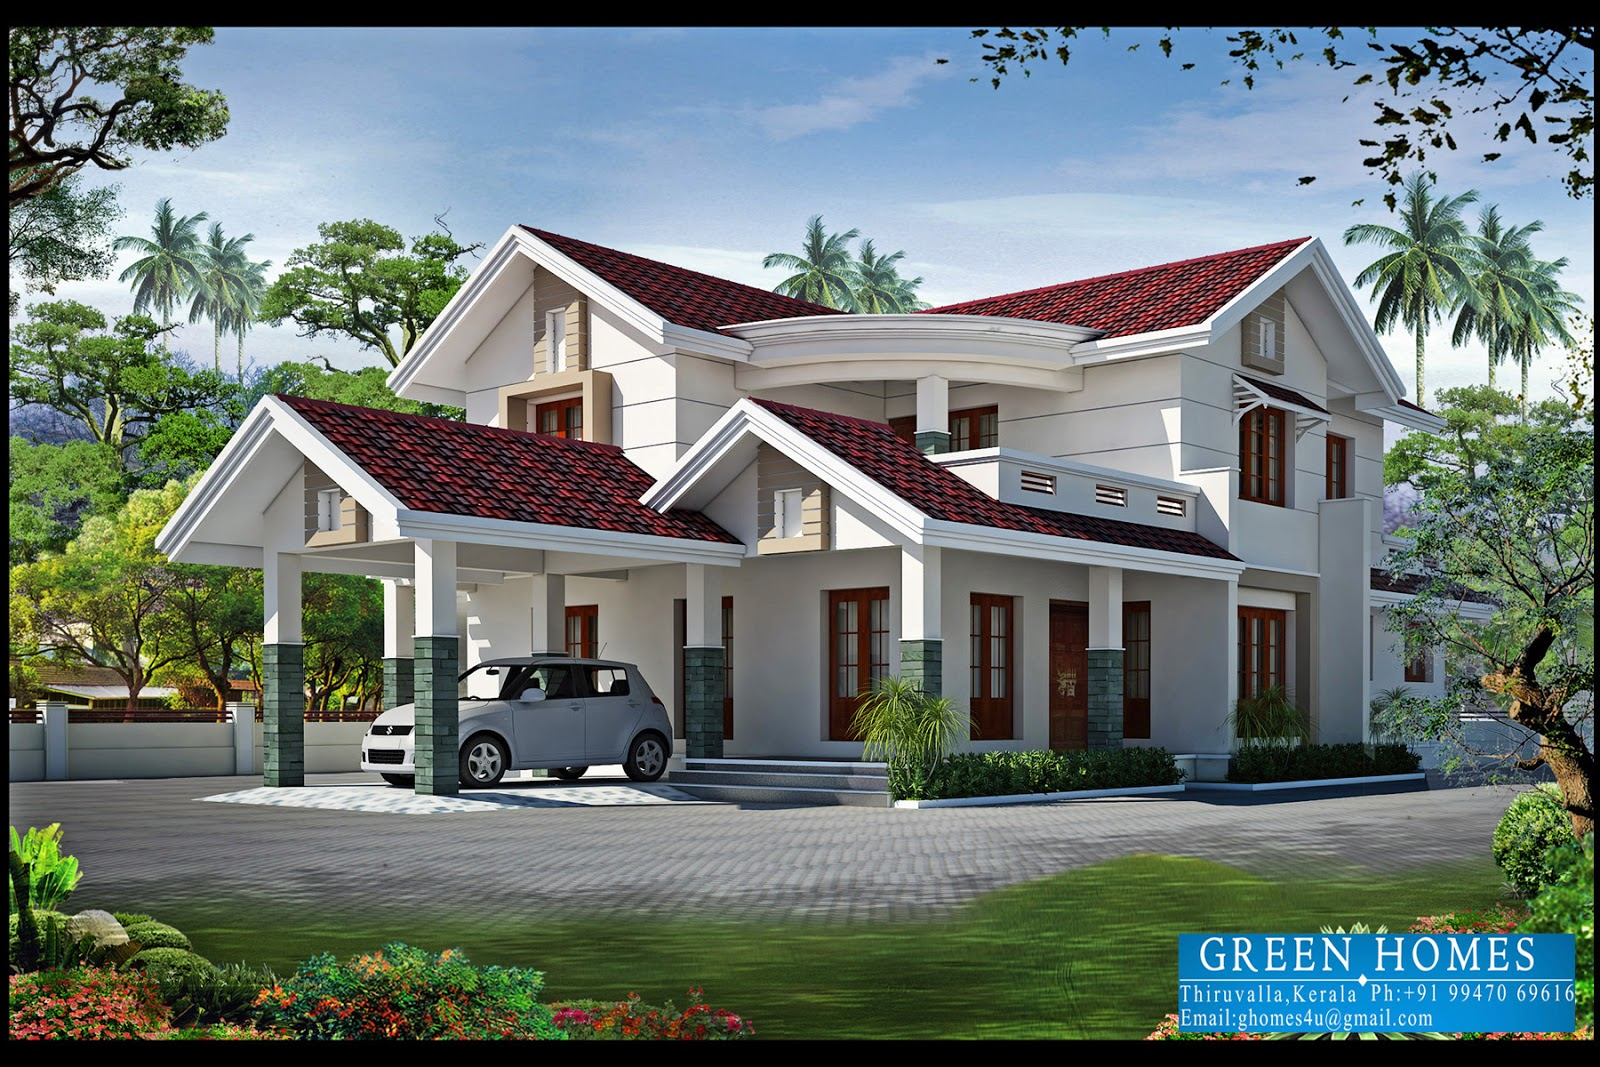 Green homes 4bhk kerala home design 2550 for Home designs for kerala